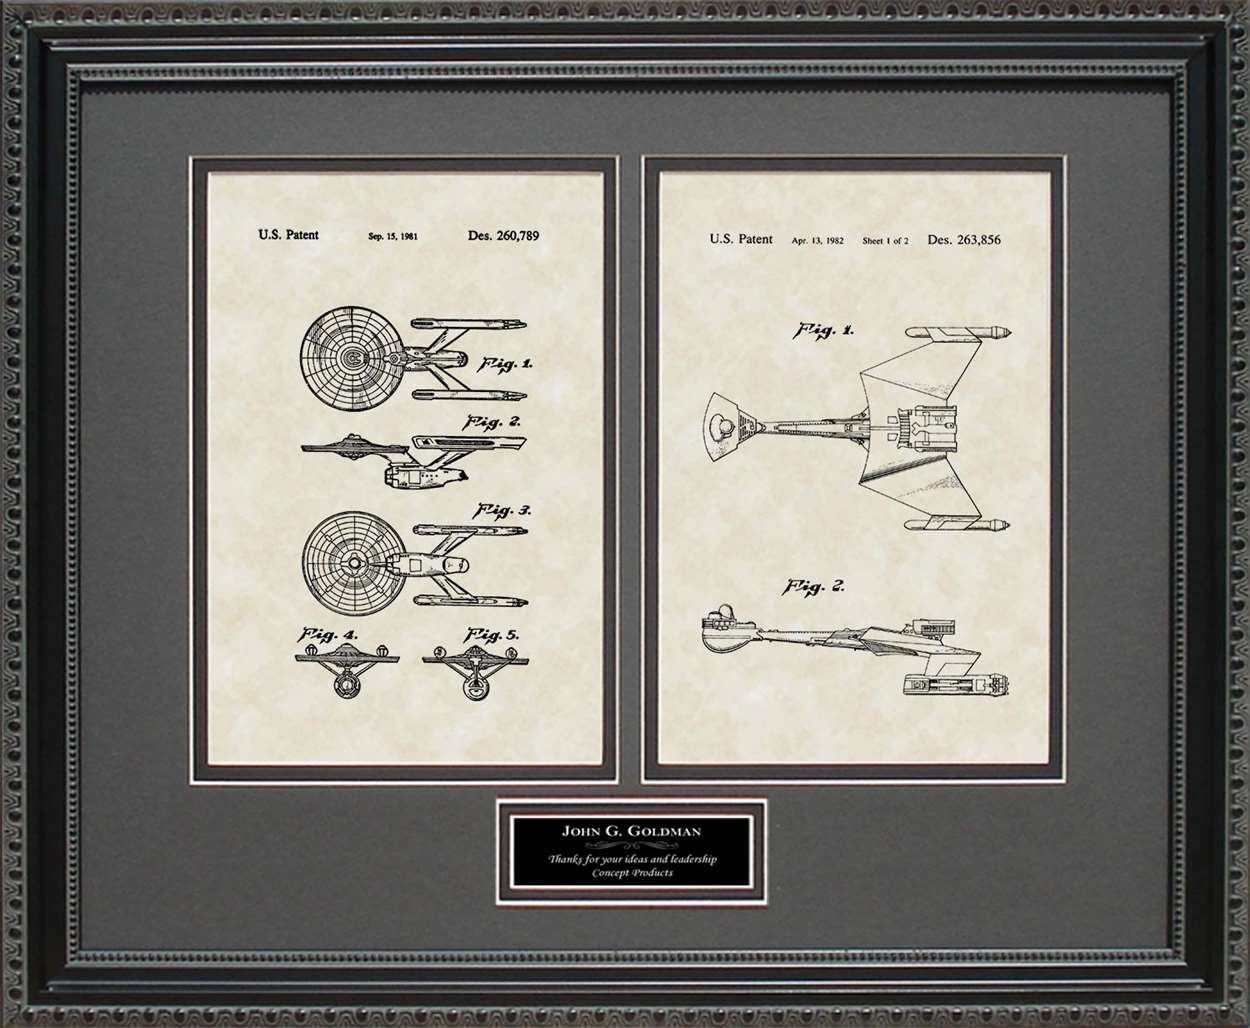 Personalized Star Trek Enterprise & Klingon Ship Patents, 16x20